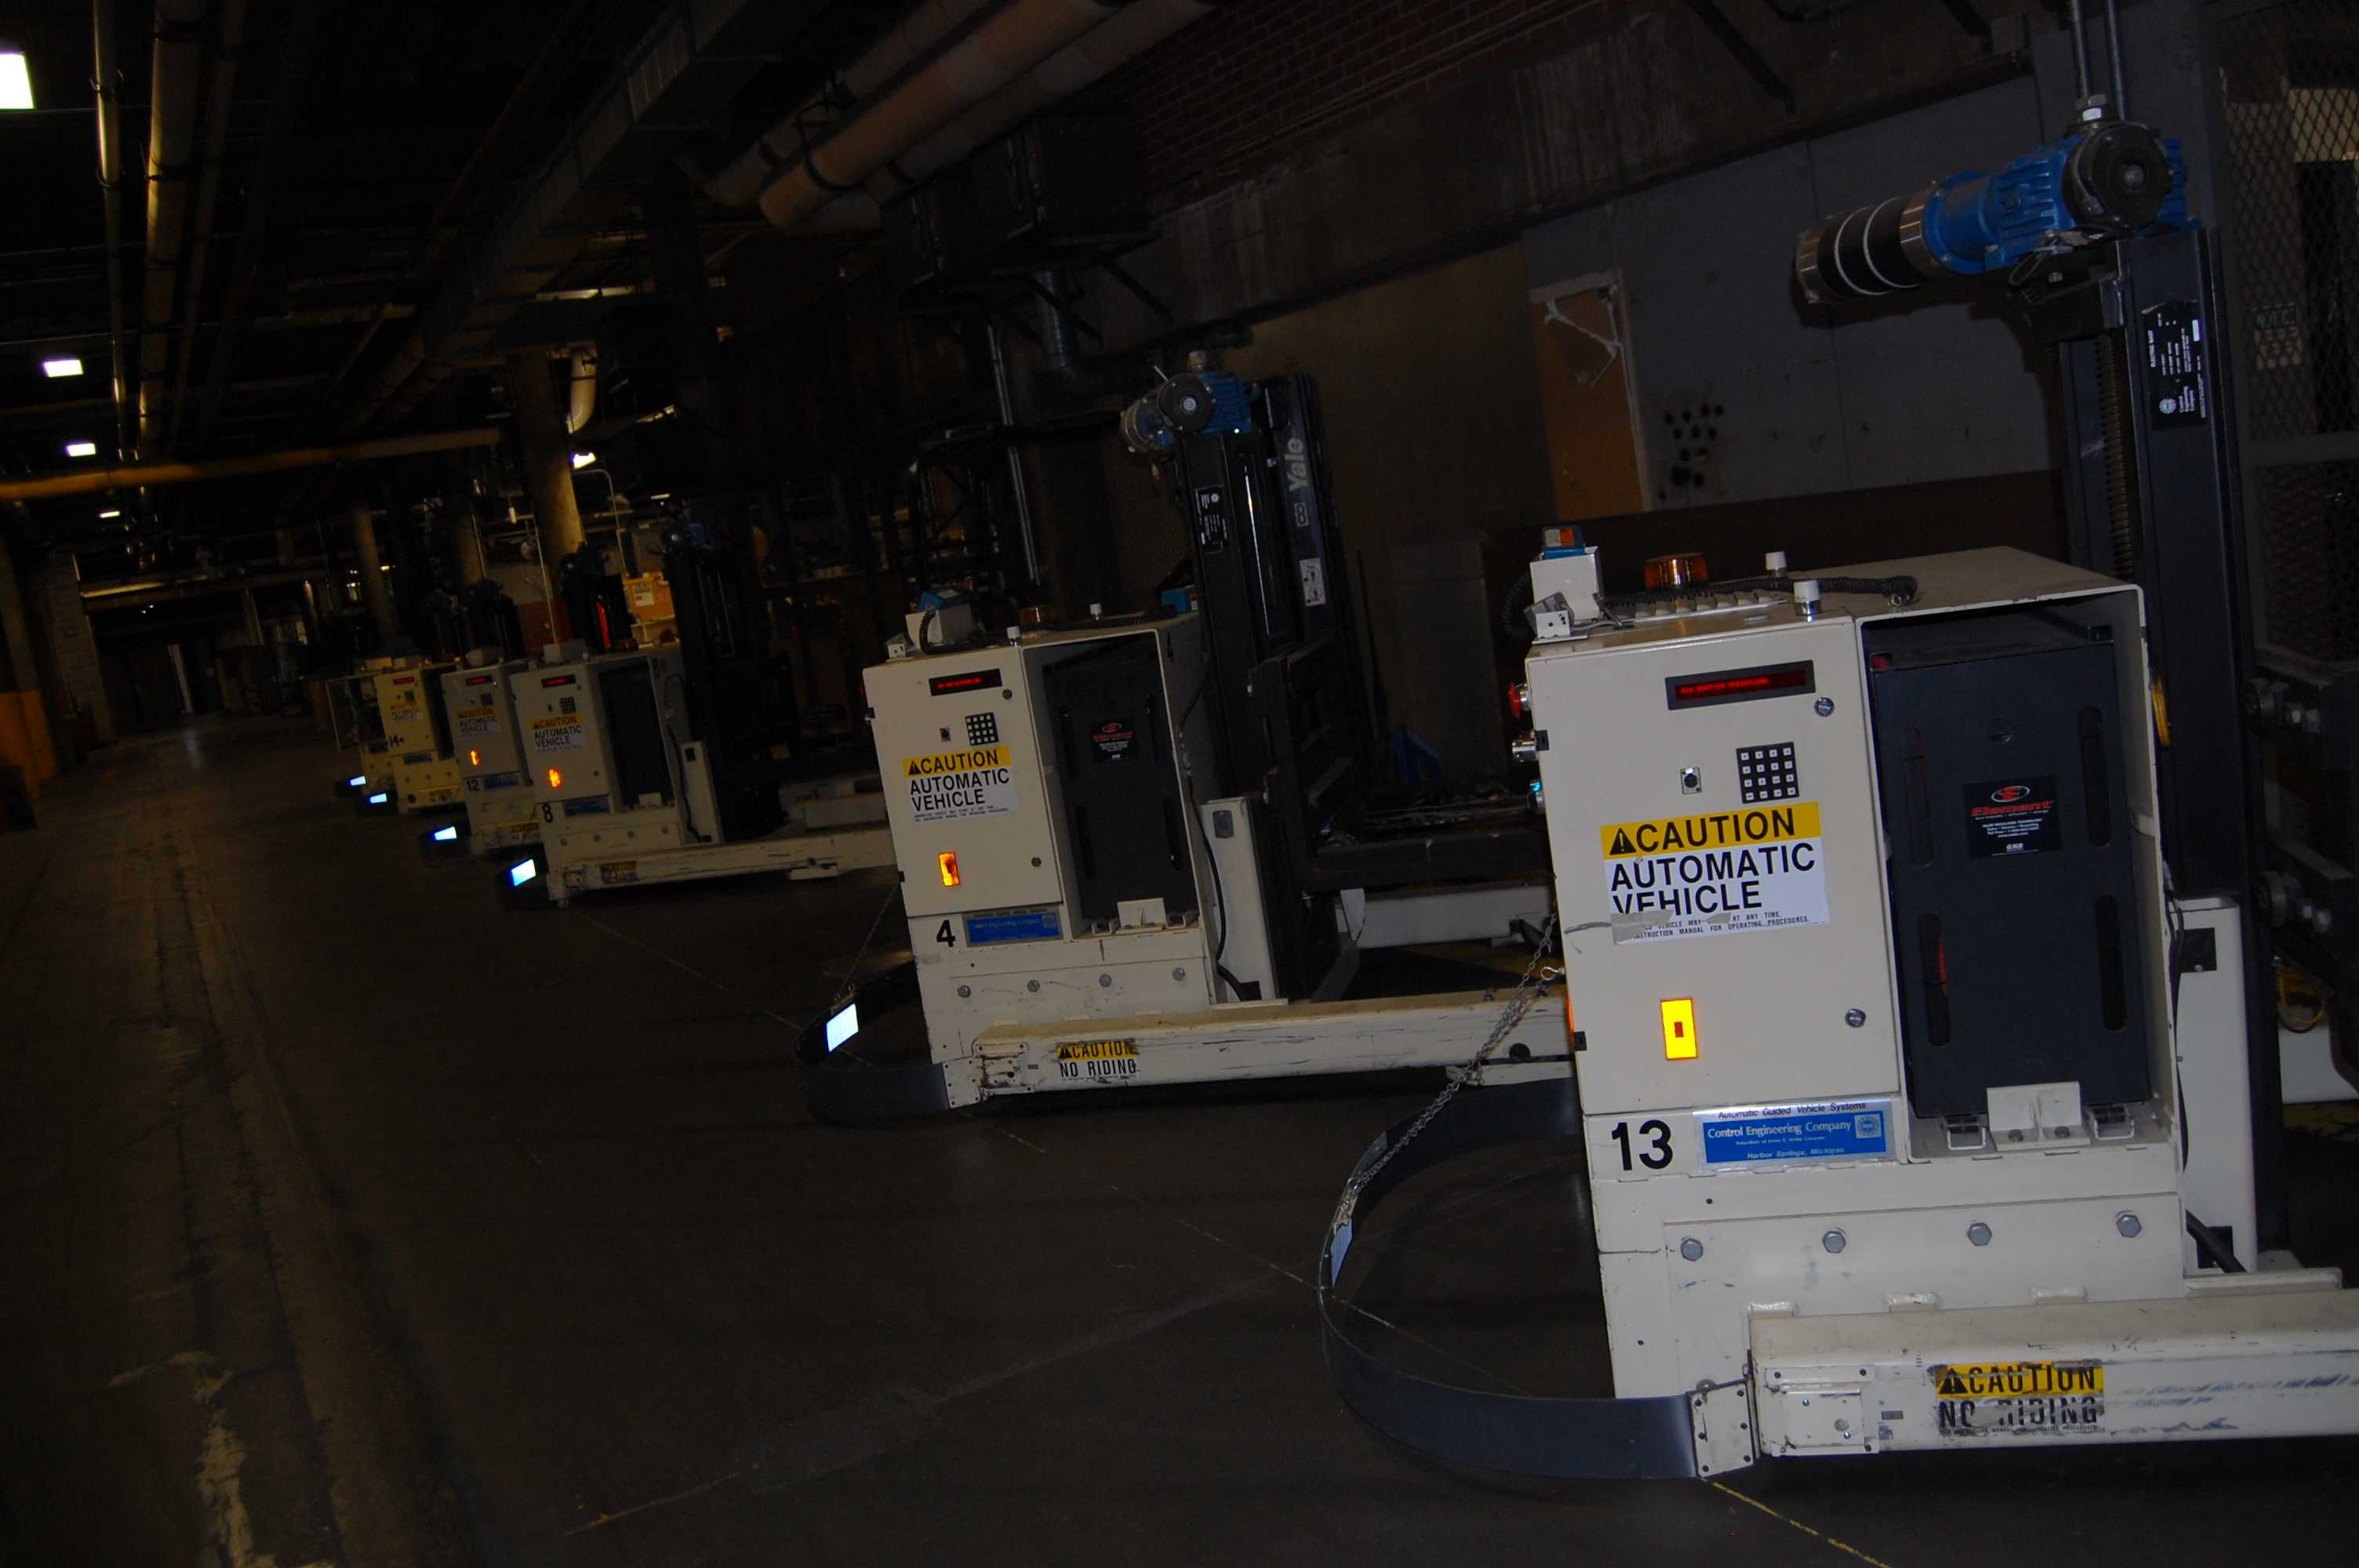 Automated machines used to lift and transport newspapers. Photo by Noa Schabes '17.